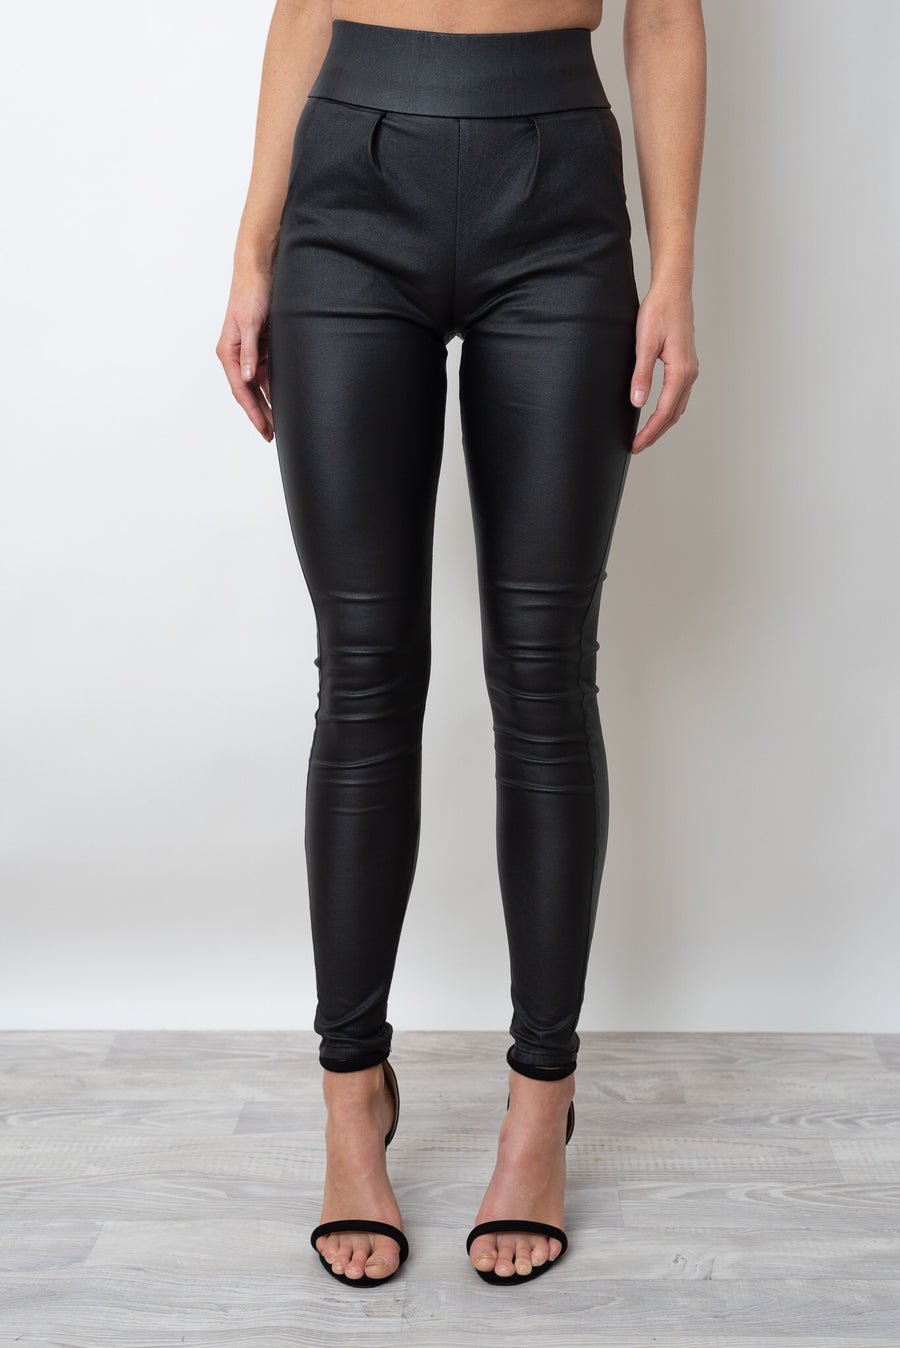 SAMMY SHINE PANT - BLACK